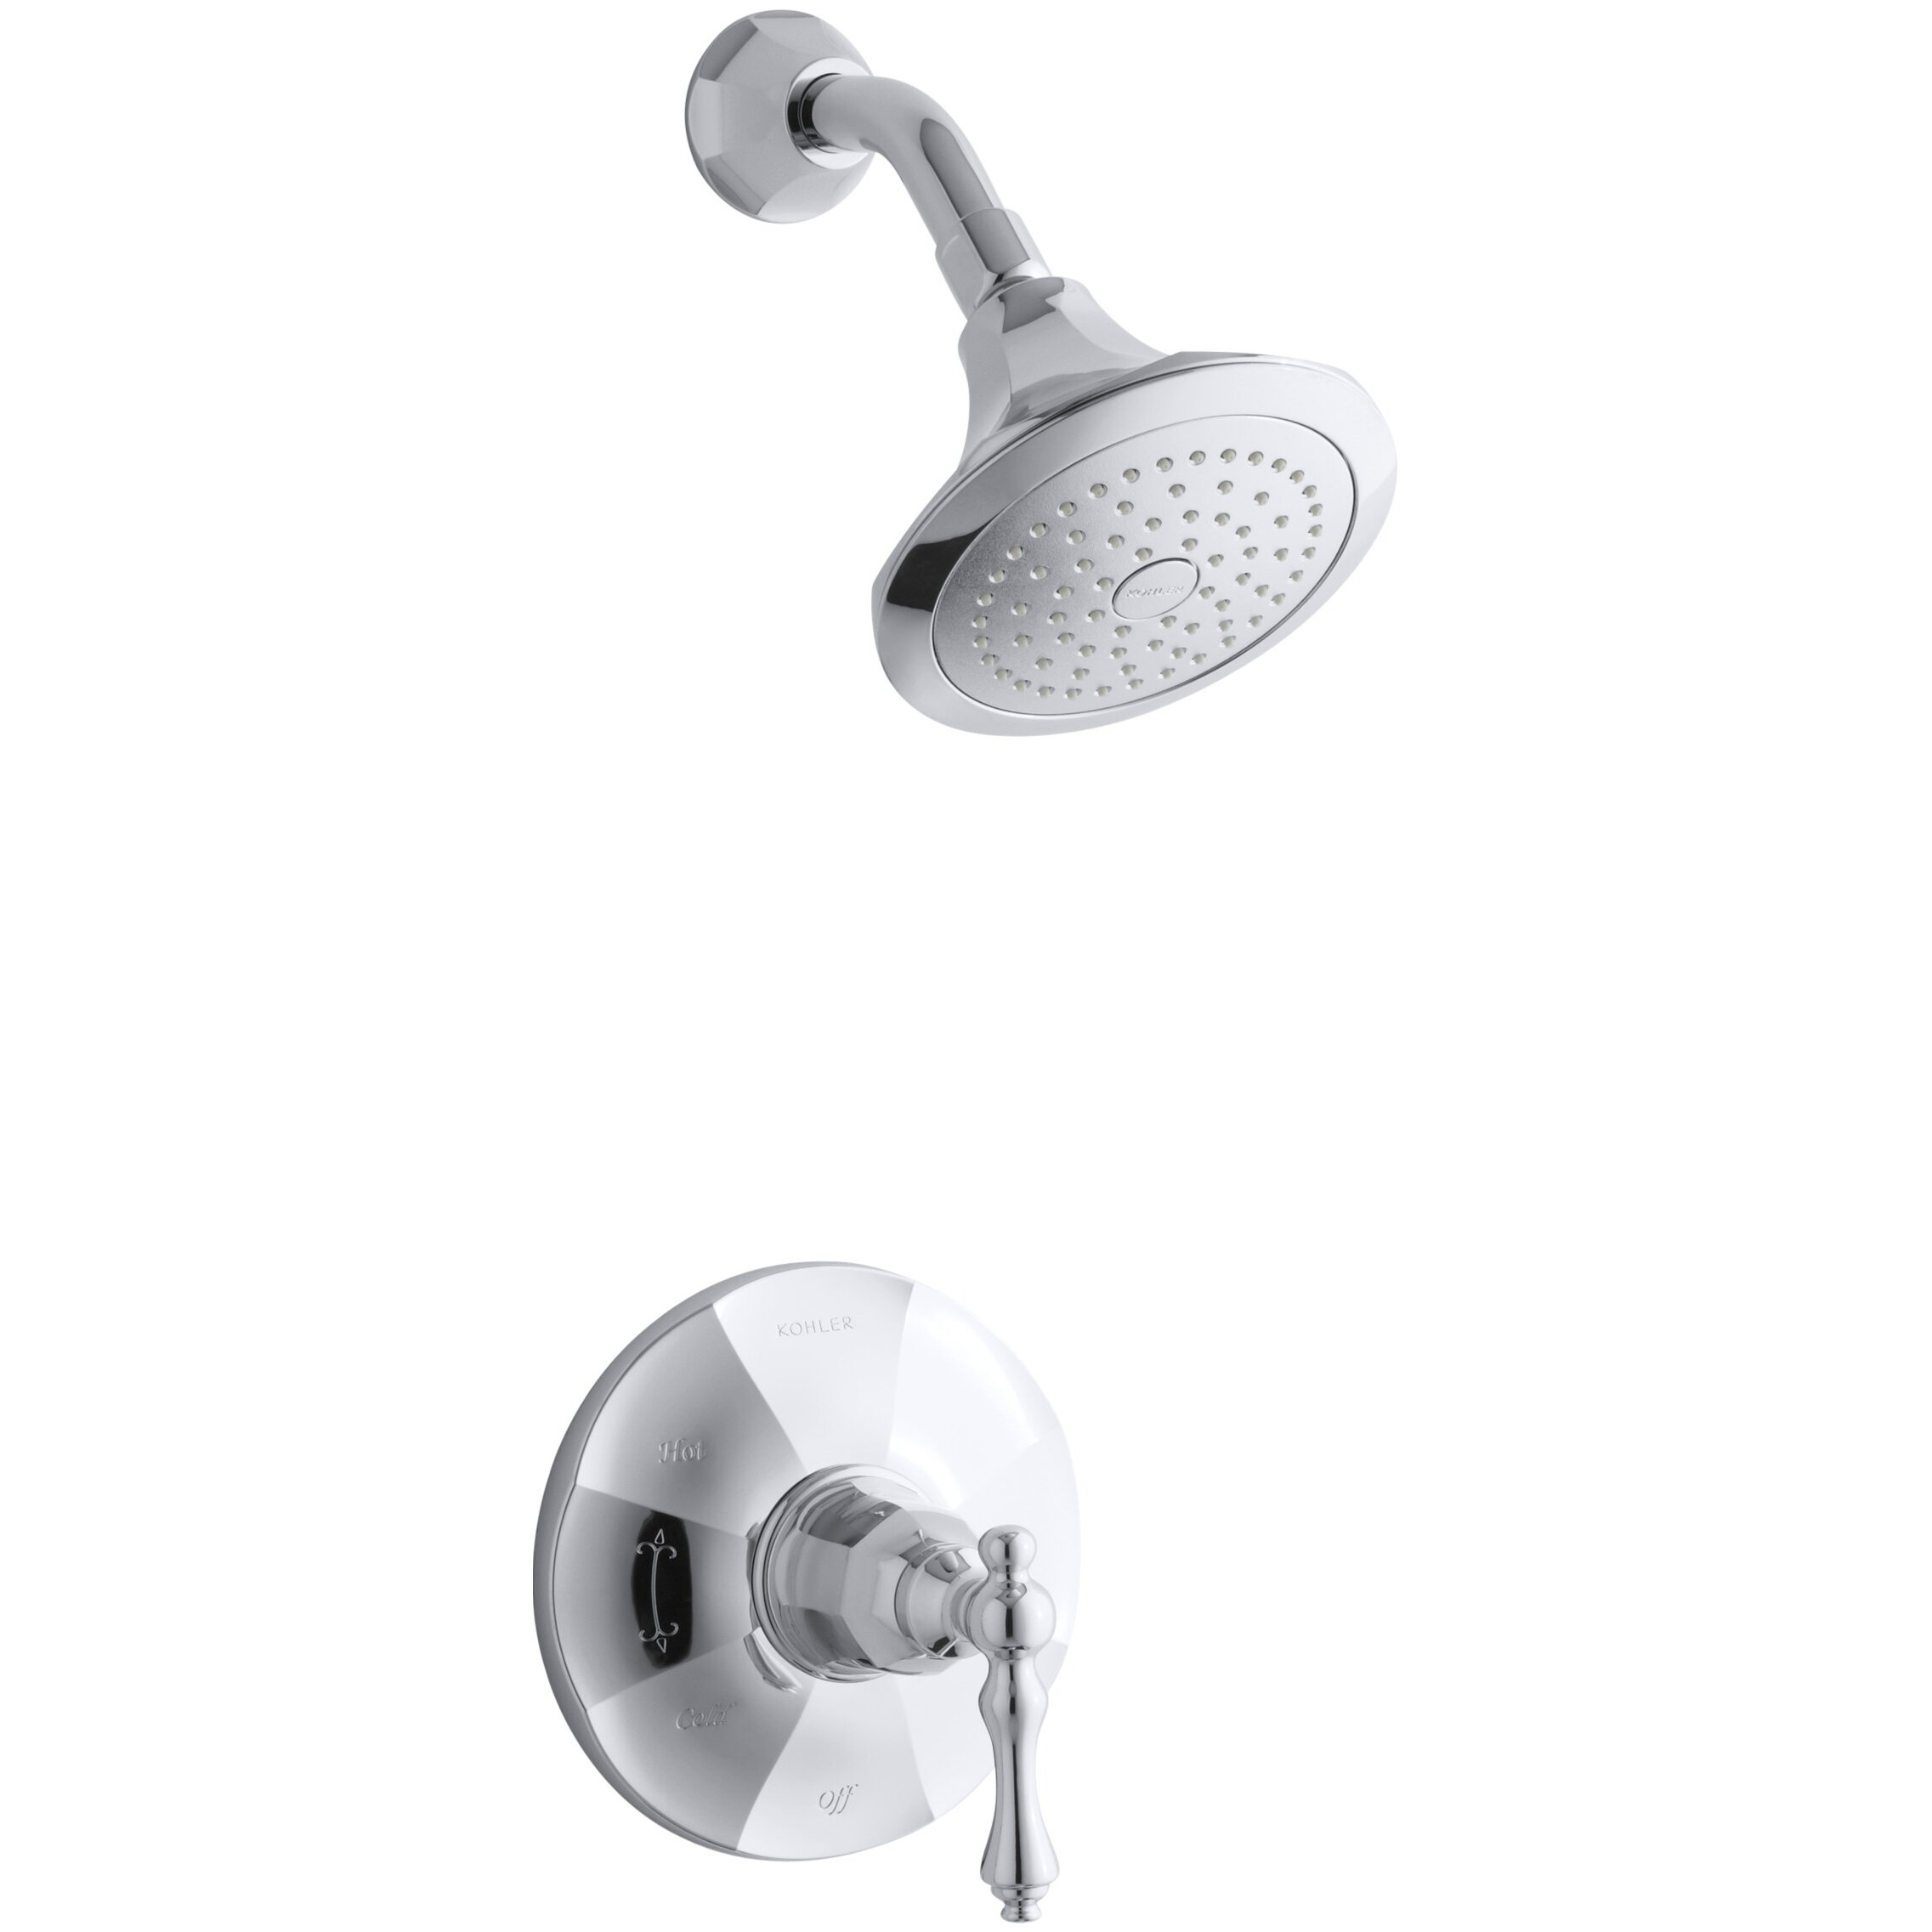 Kohler Kelston Rite-Temp Shower Faucet Trim & Reviews | Wayfair - Kohler Kelston Rite-Temp Shower Faucet Trim